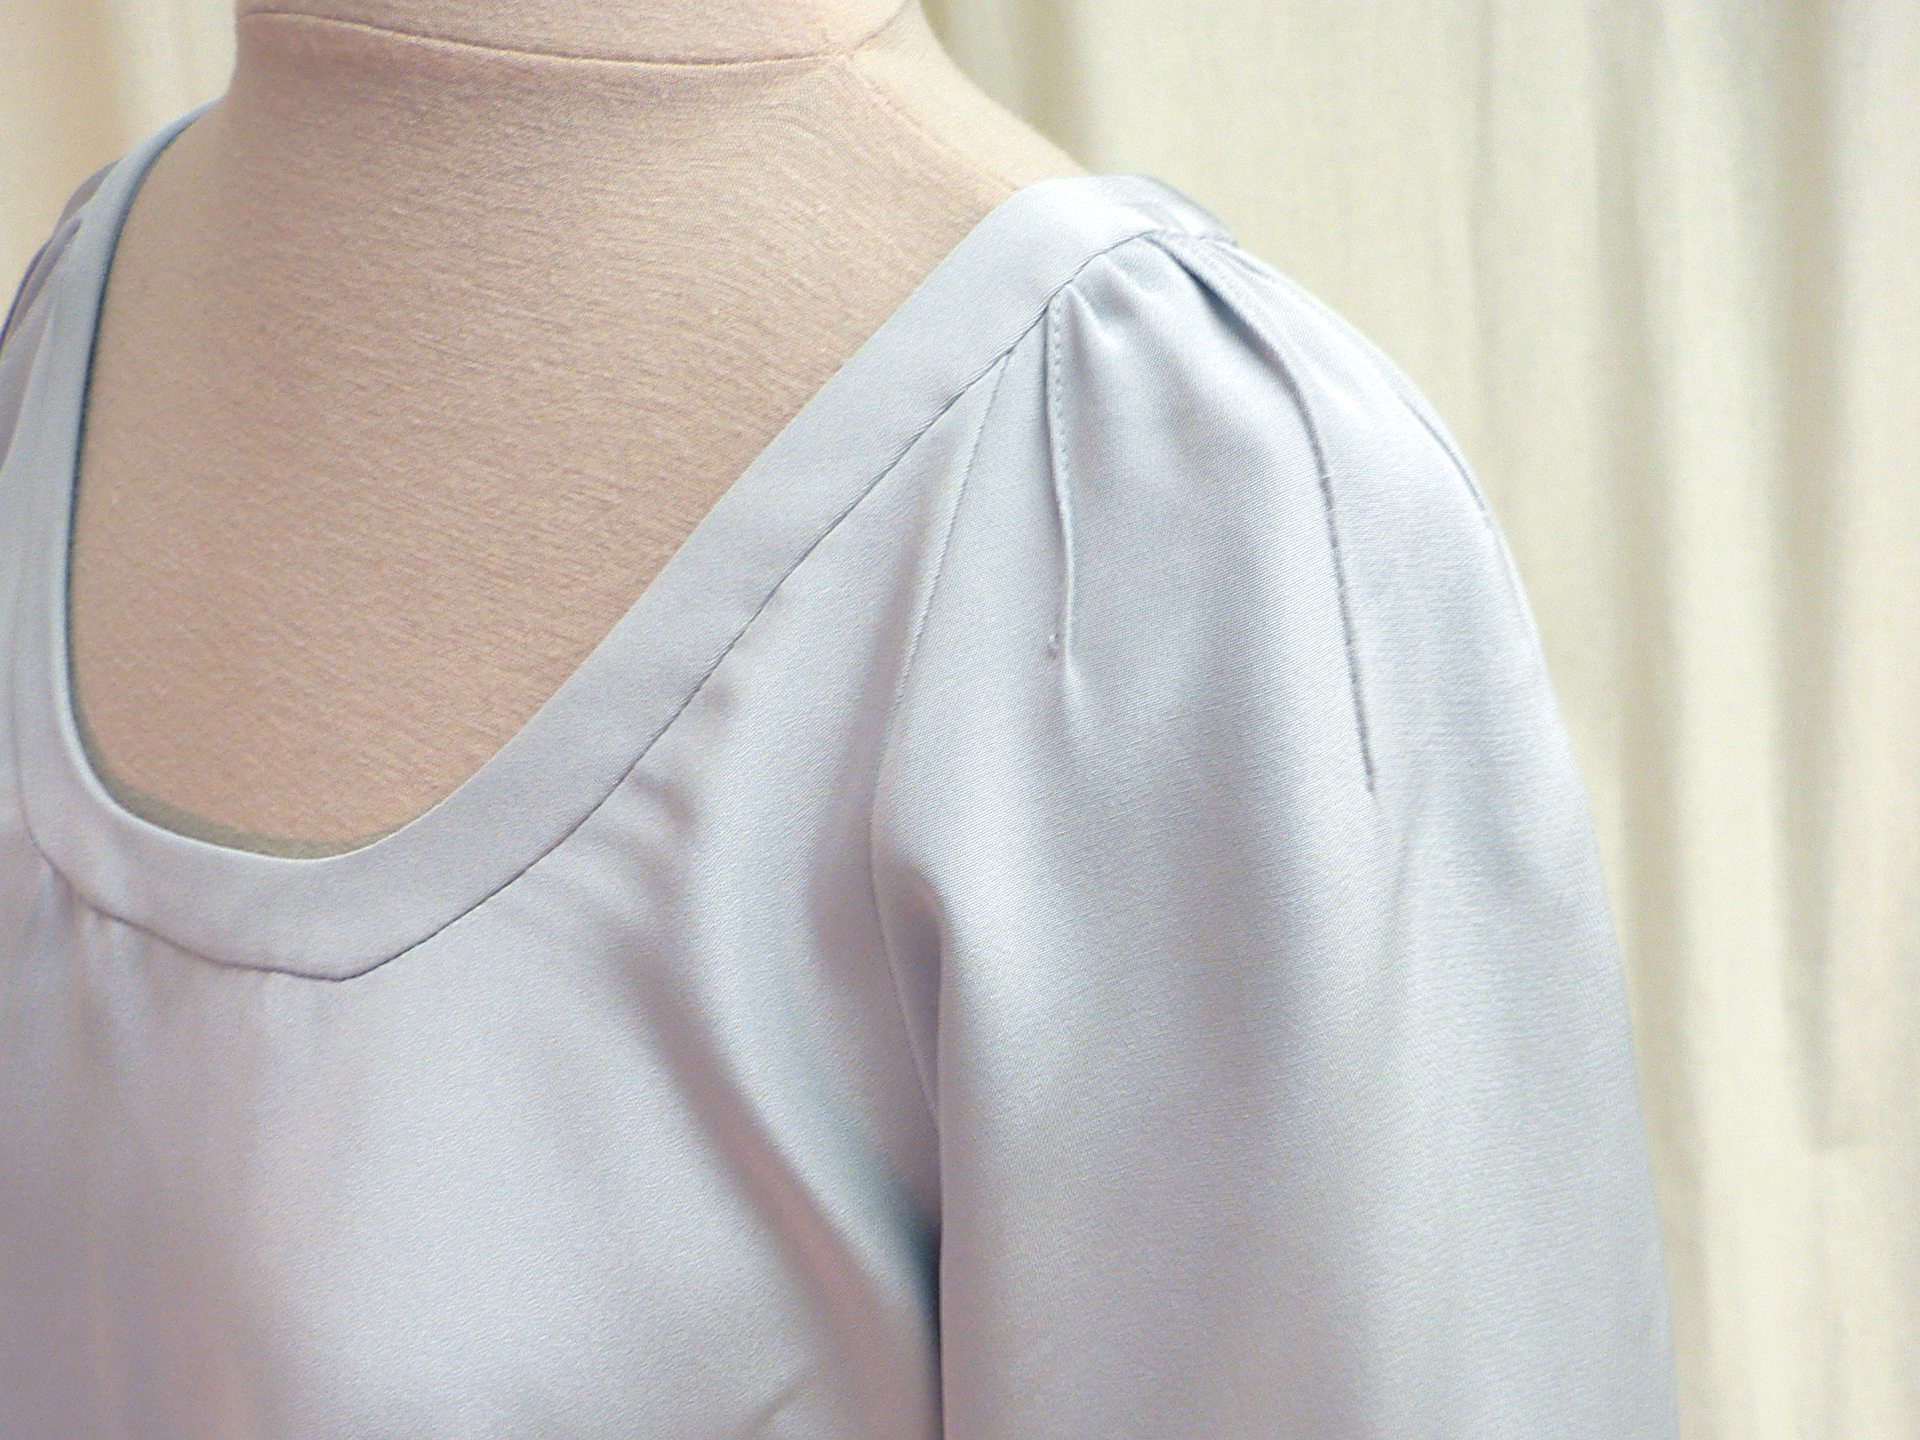 ensemble13_sleeve_detail1.jpg